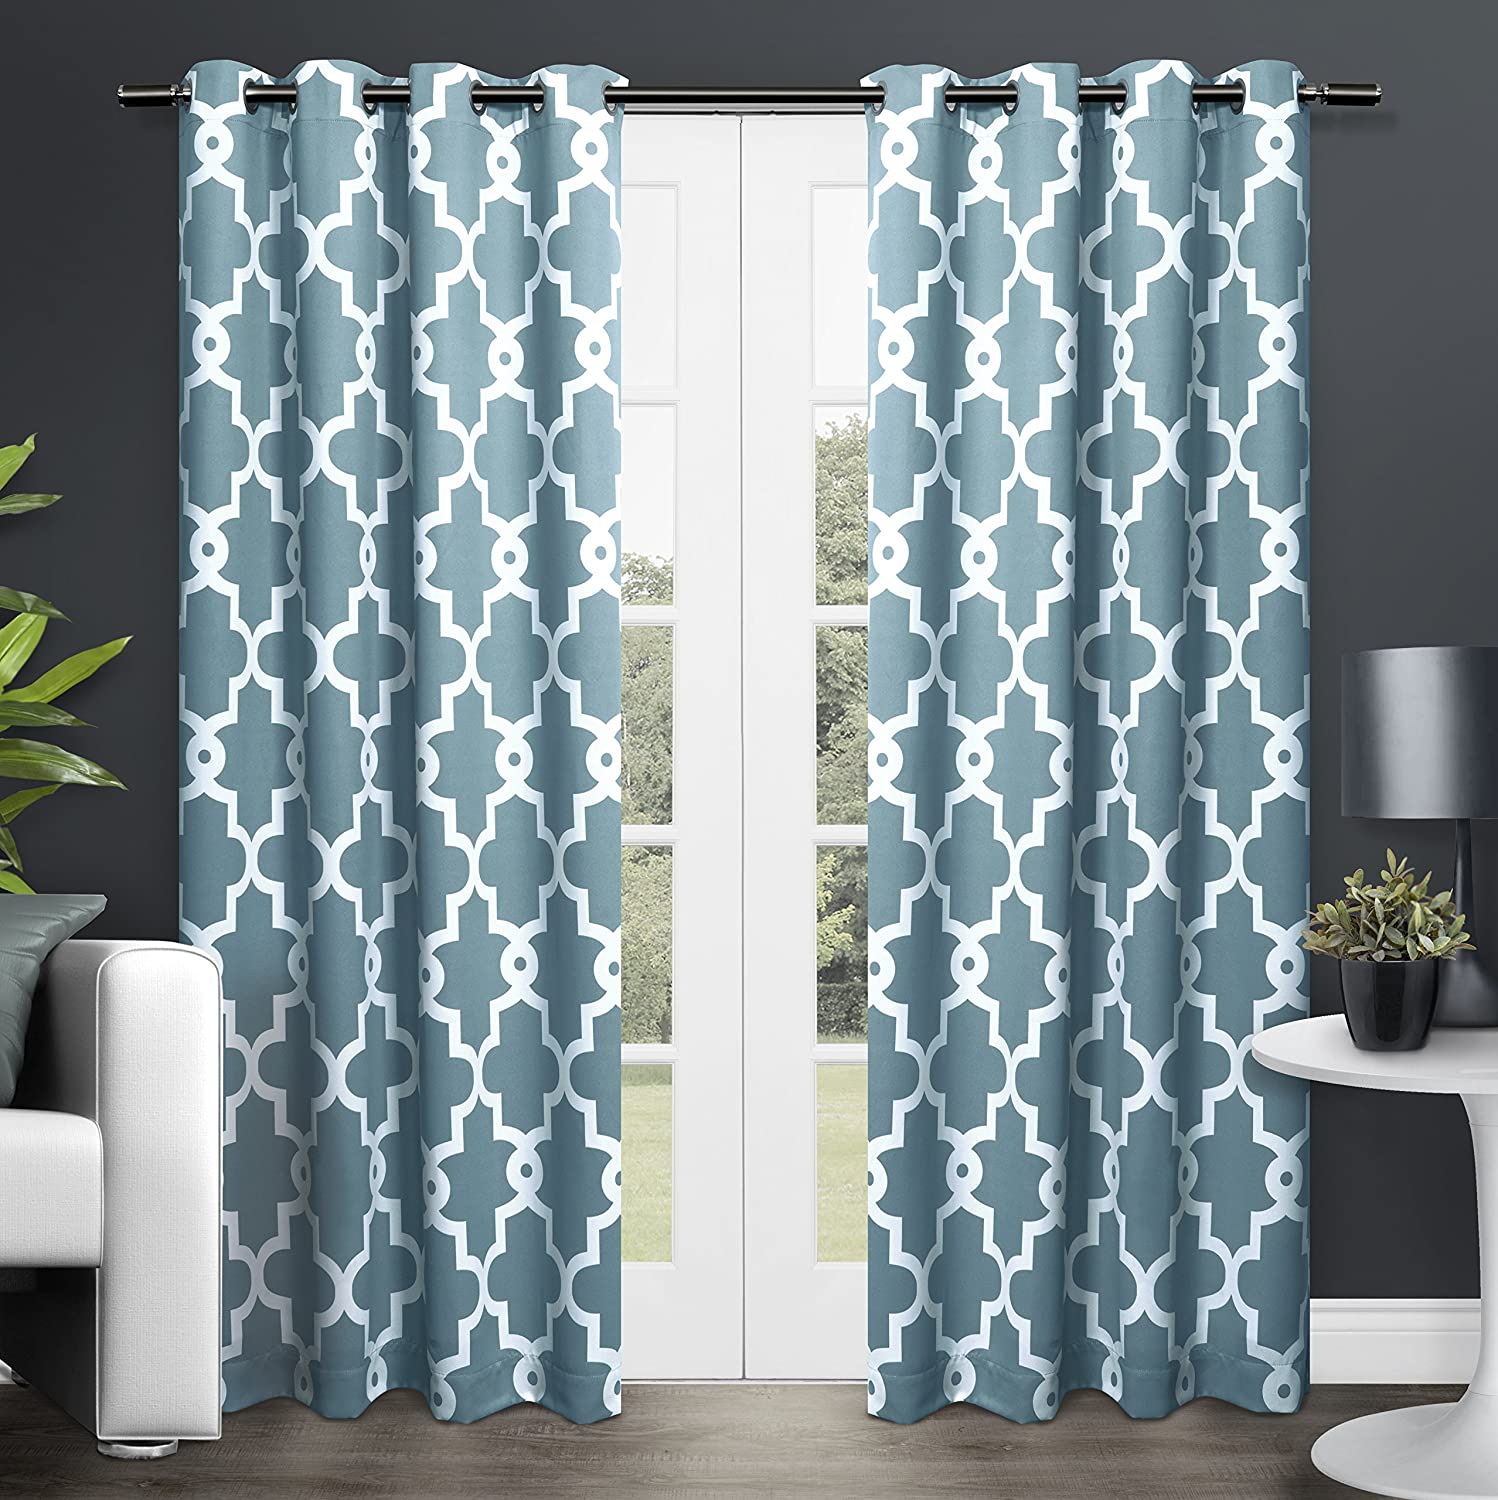 at kitchen curtains moda plus patience stuff home polyester green teal curtain shower